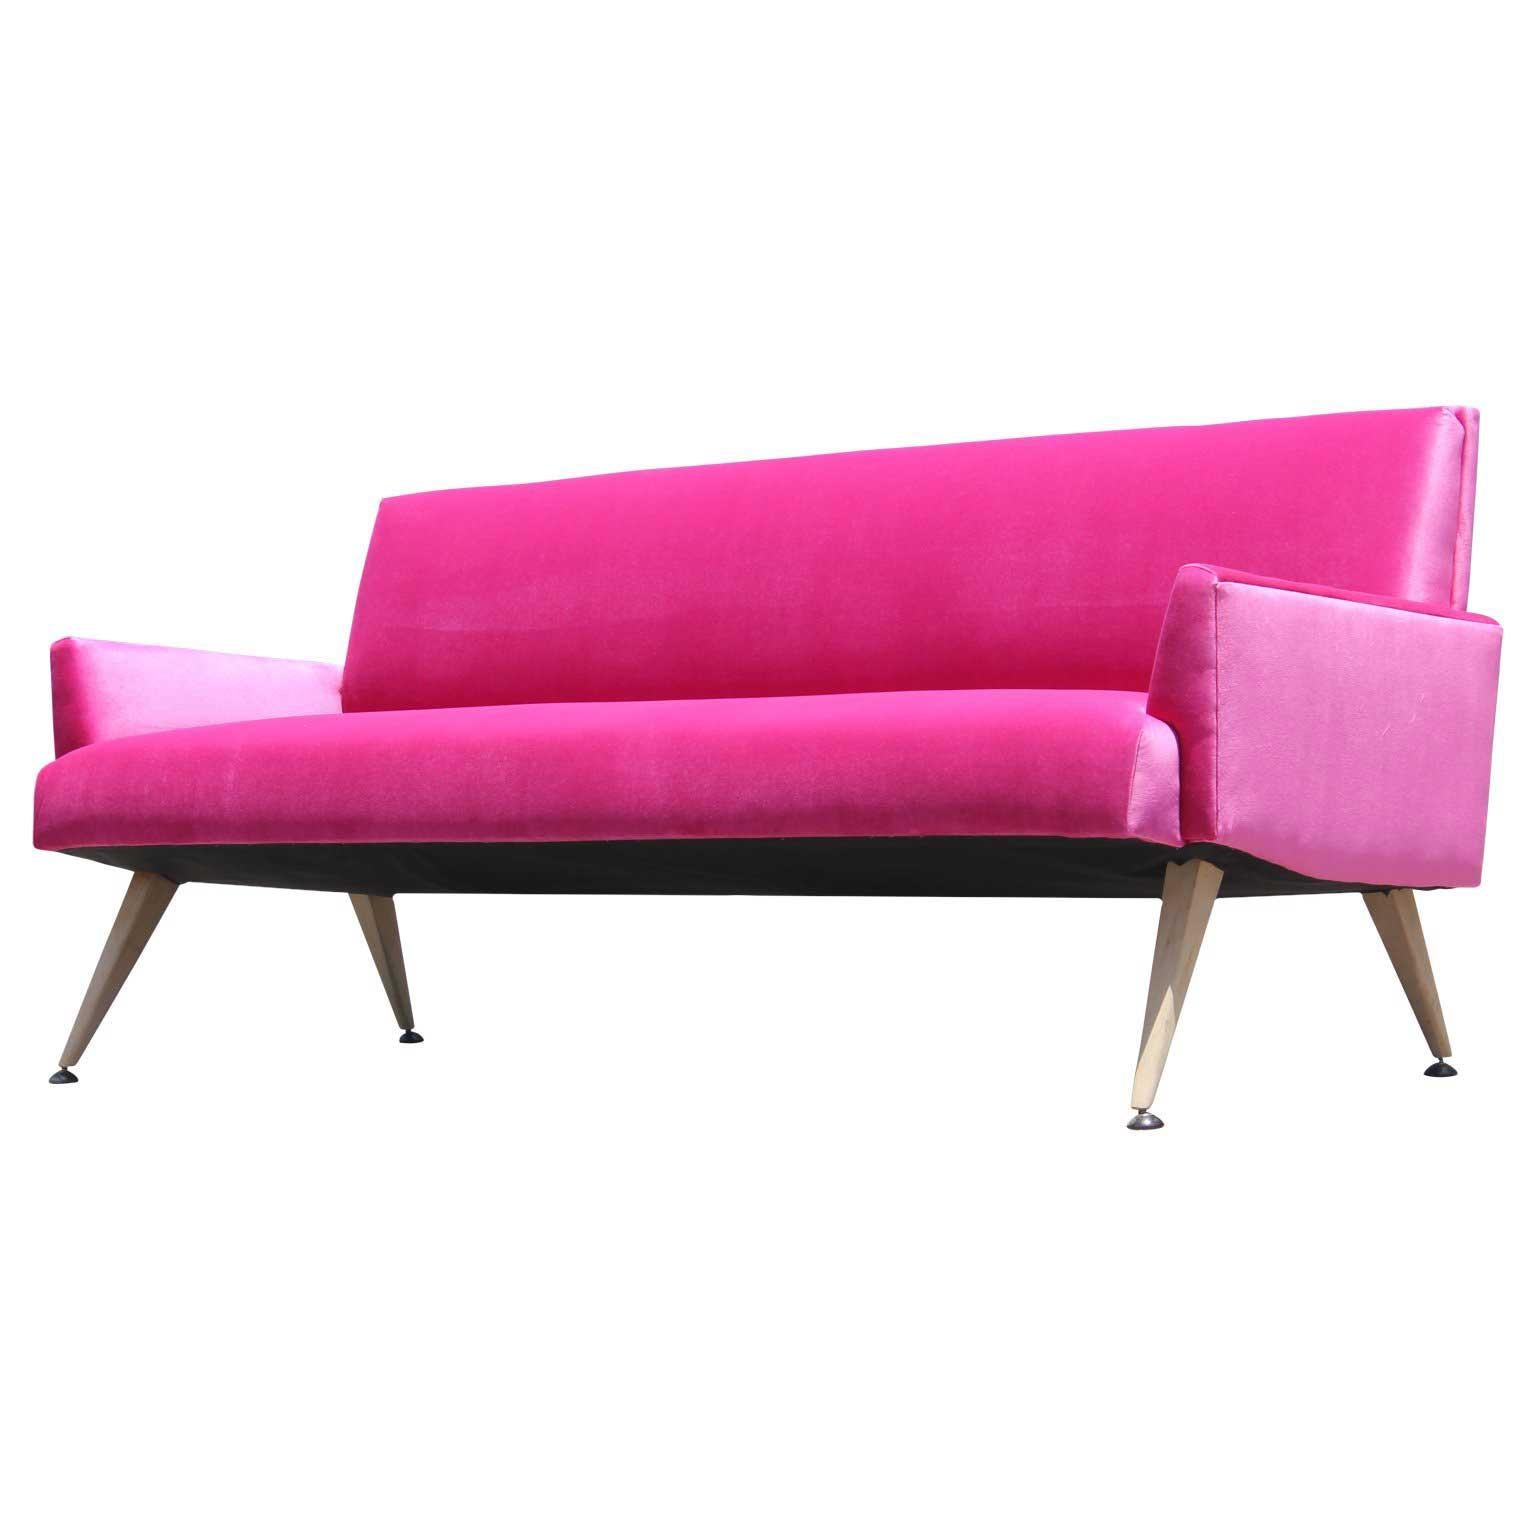 Pink velvet sofa Tufted Midcentury Modern Bold Pink Velvet Sofa With Bleached Walnut Tapered Legs For Sale 1stdibs Midcentury Modern Bold Pink Velvet Sofa With Bleached Walnut